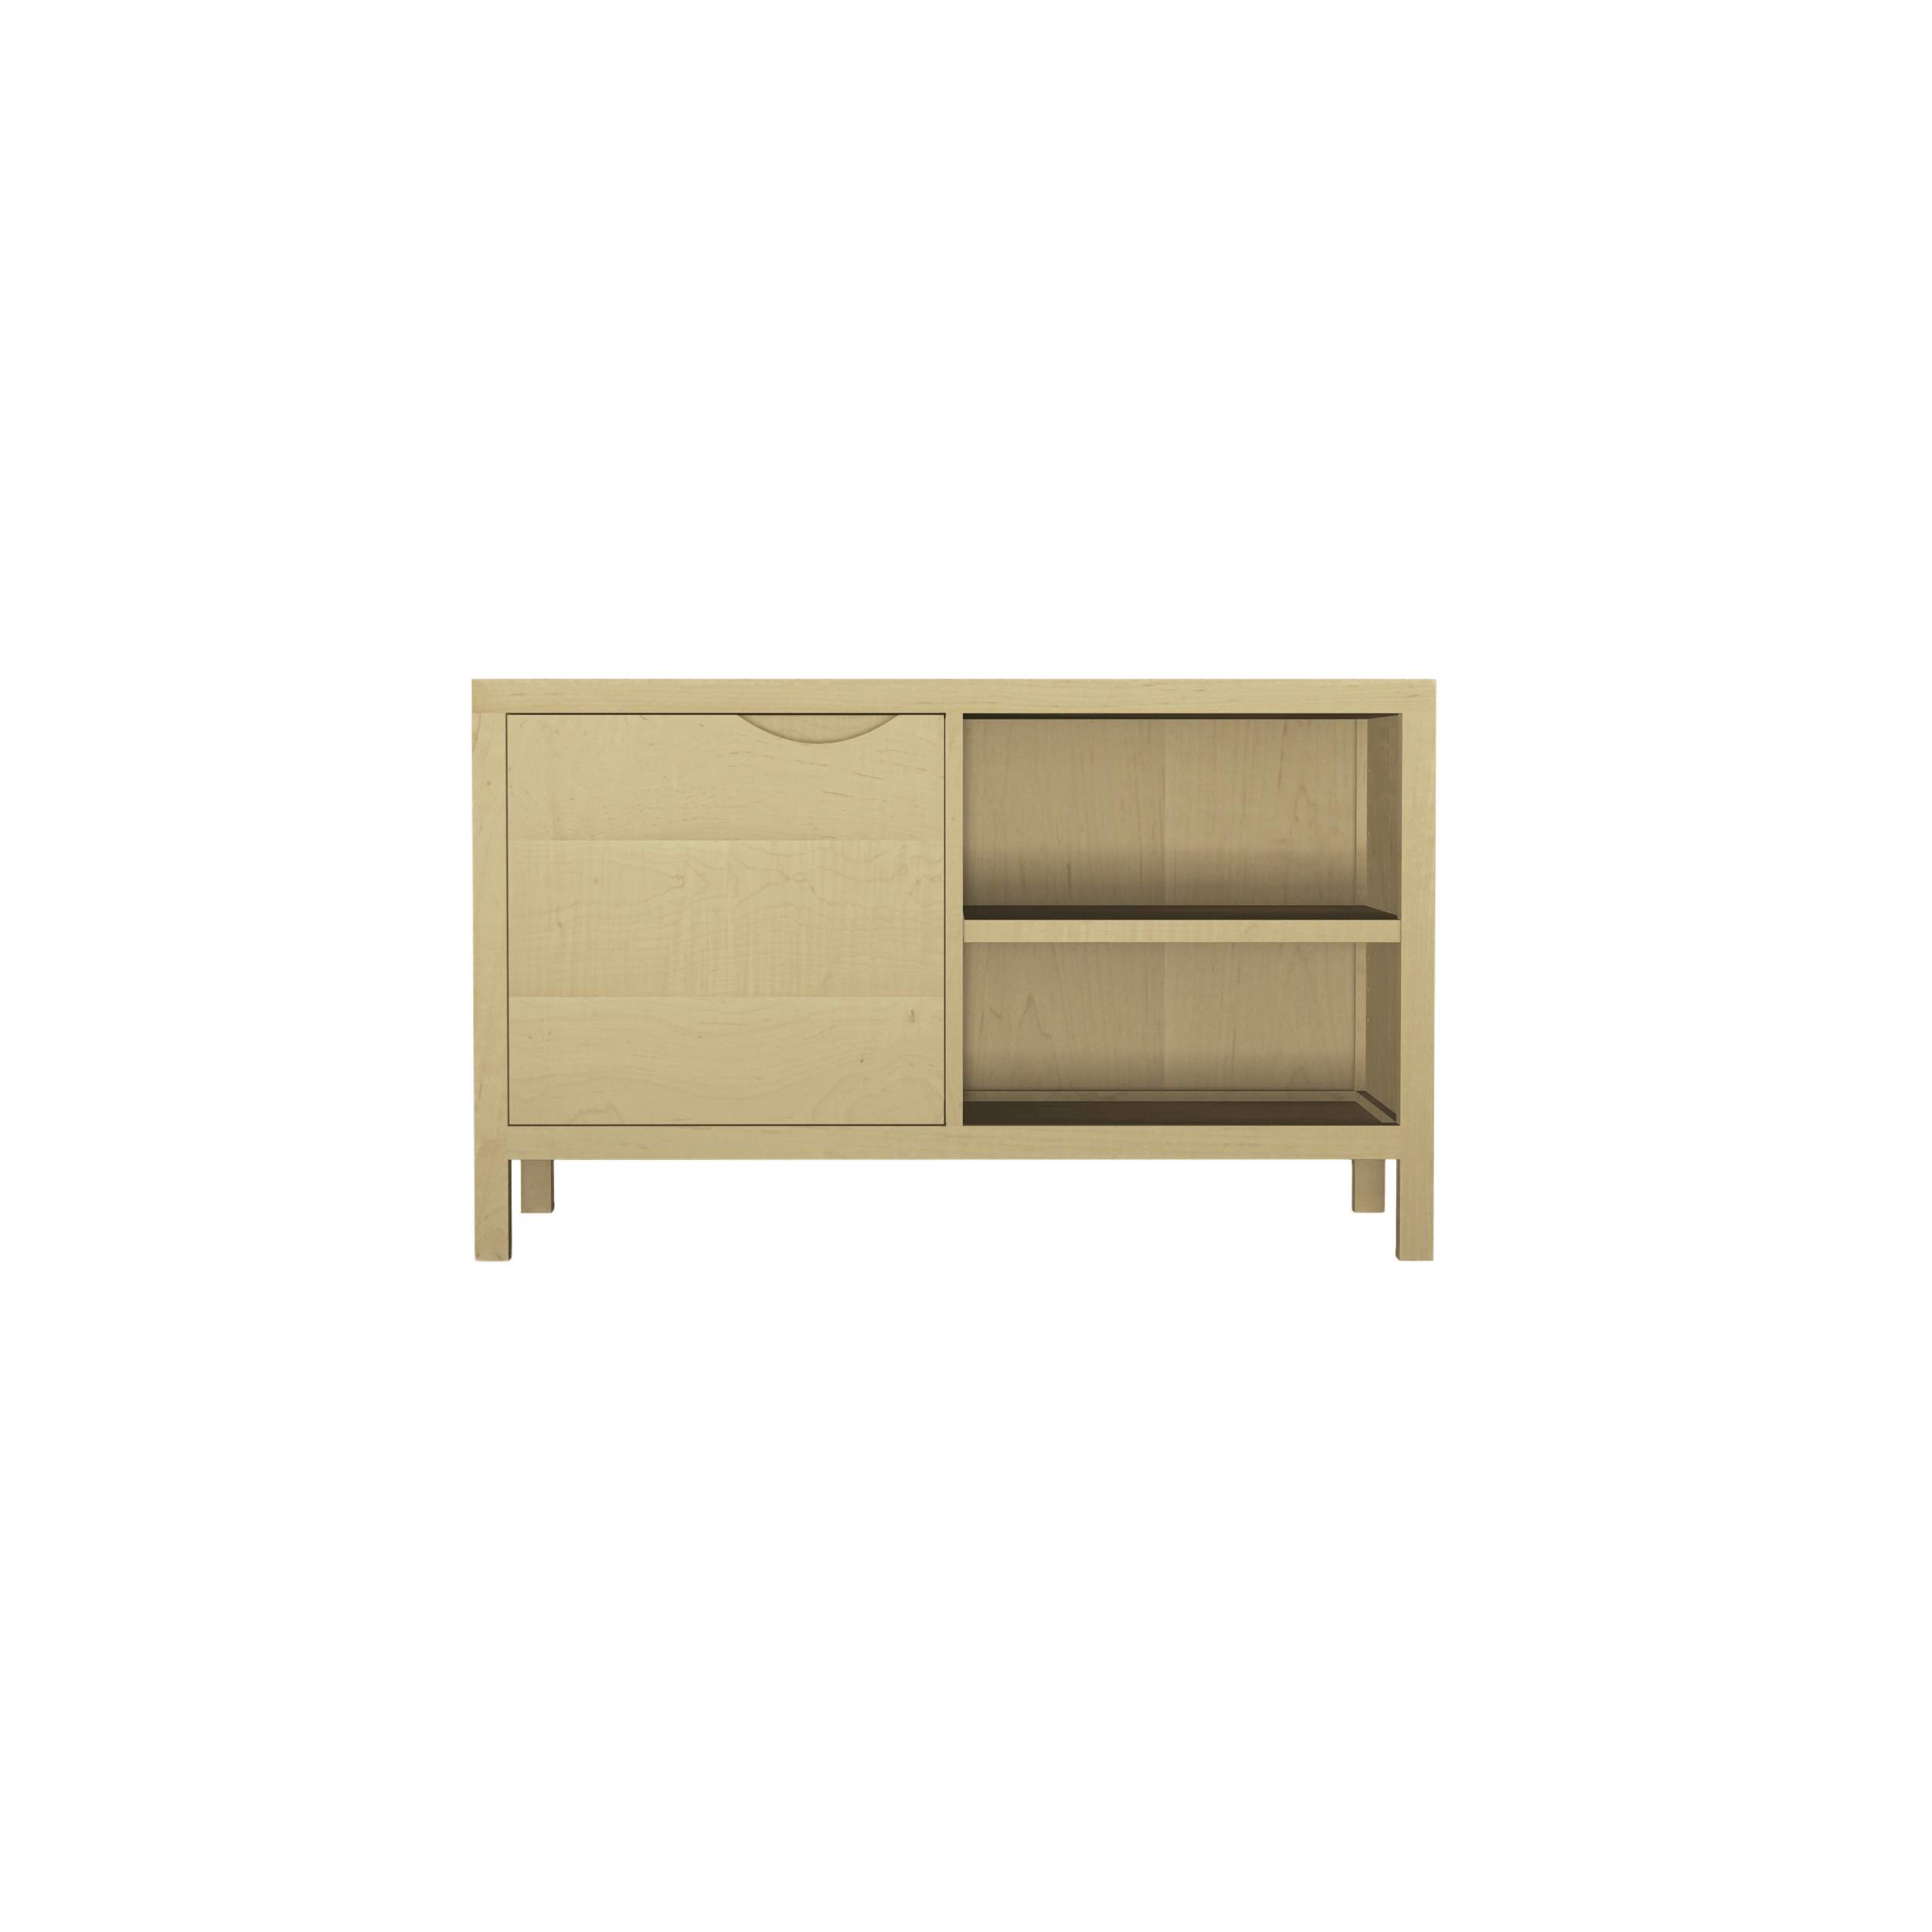 Series 353 Media Cabinet With One Door At 42″ In Width